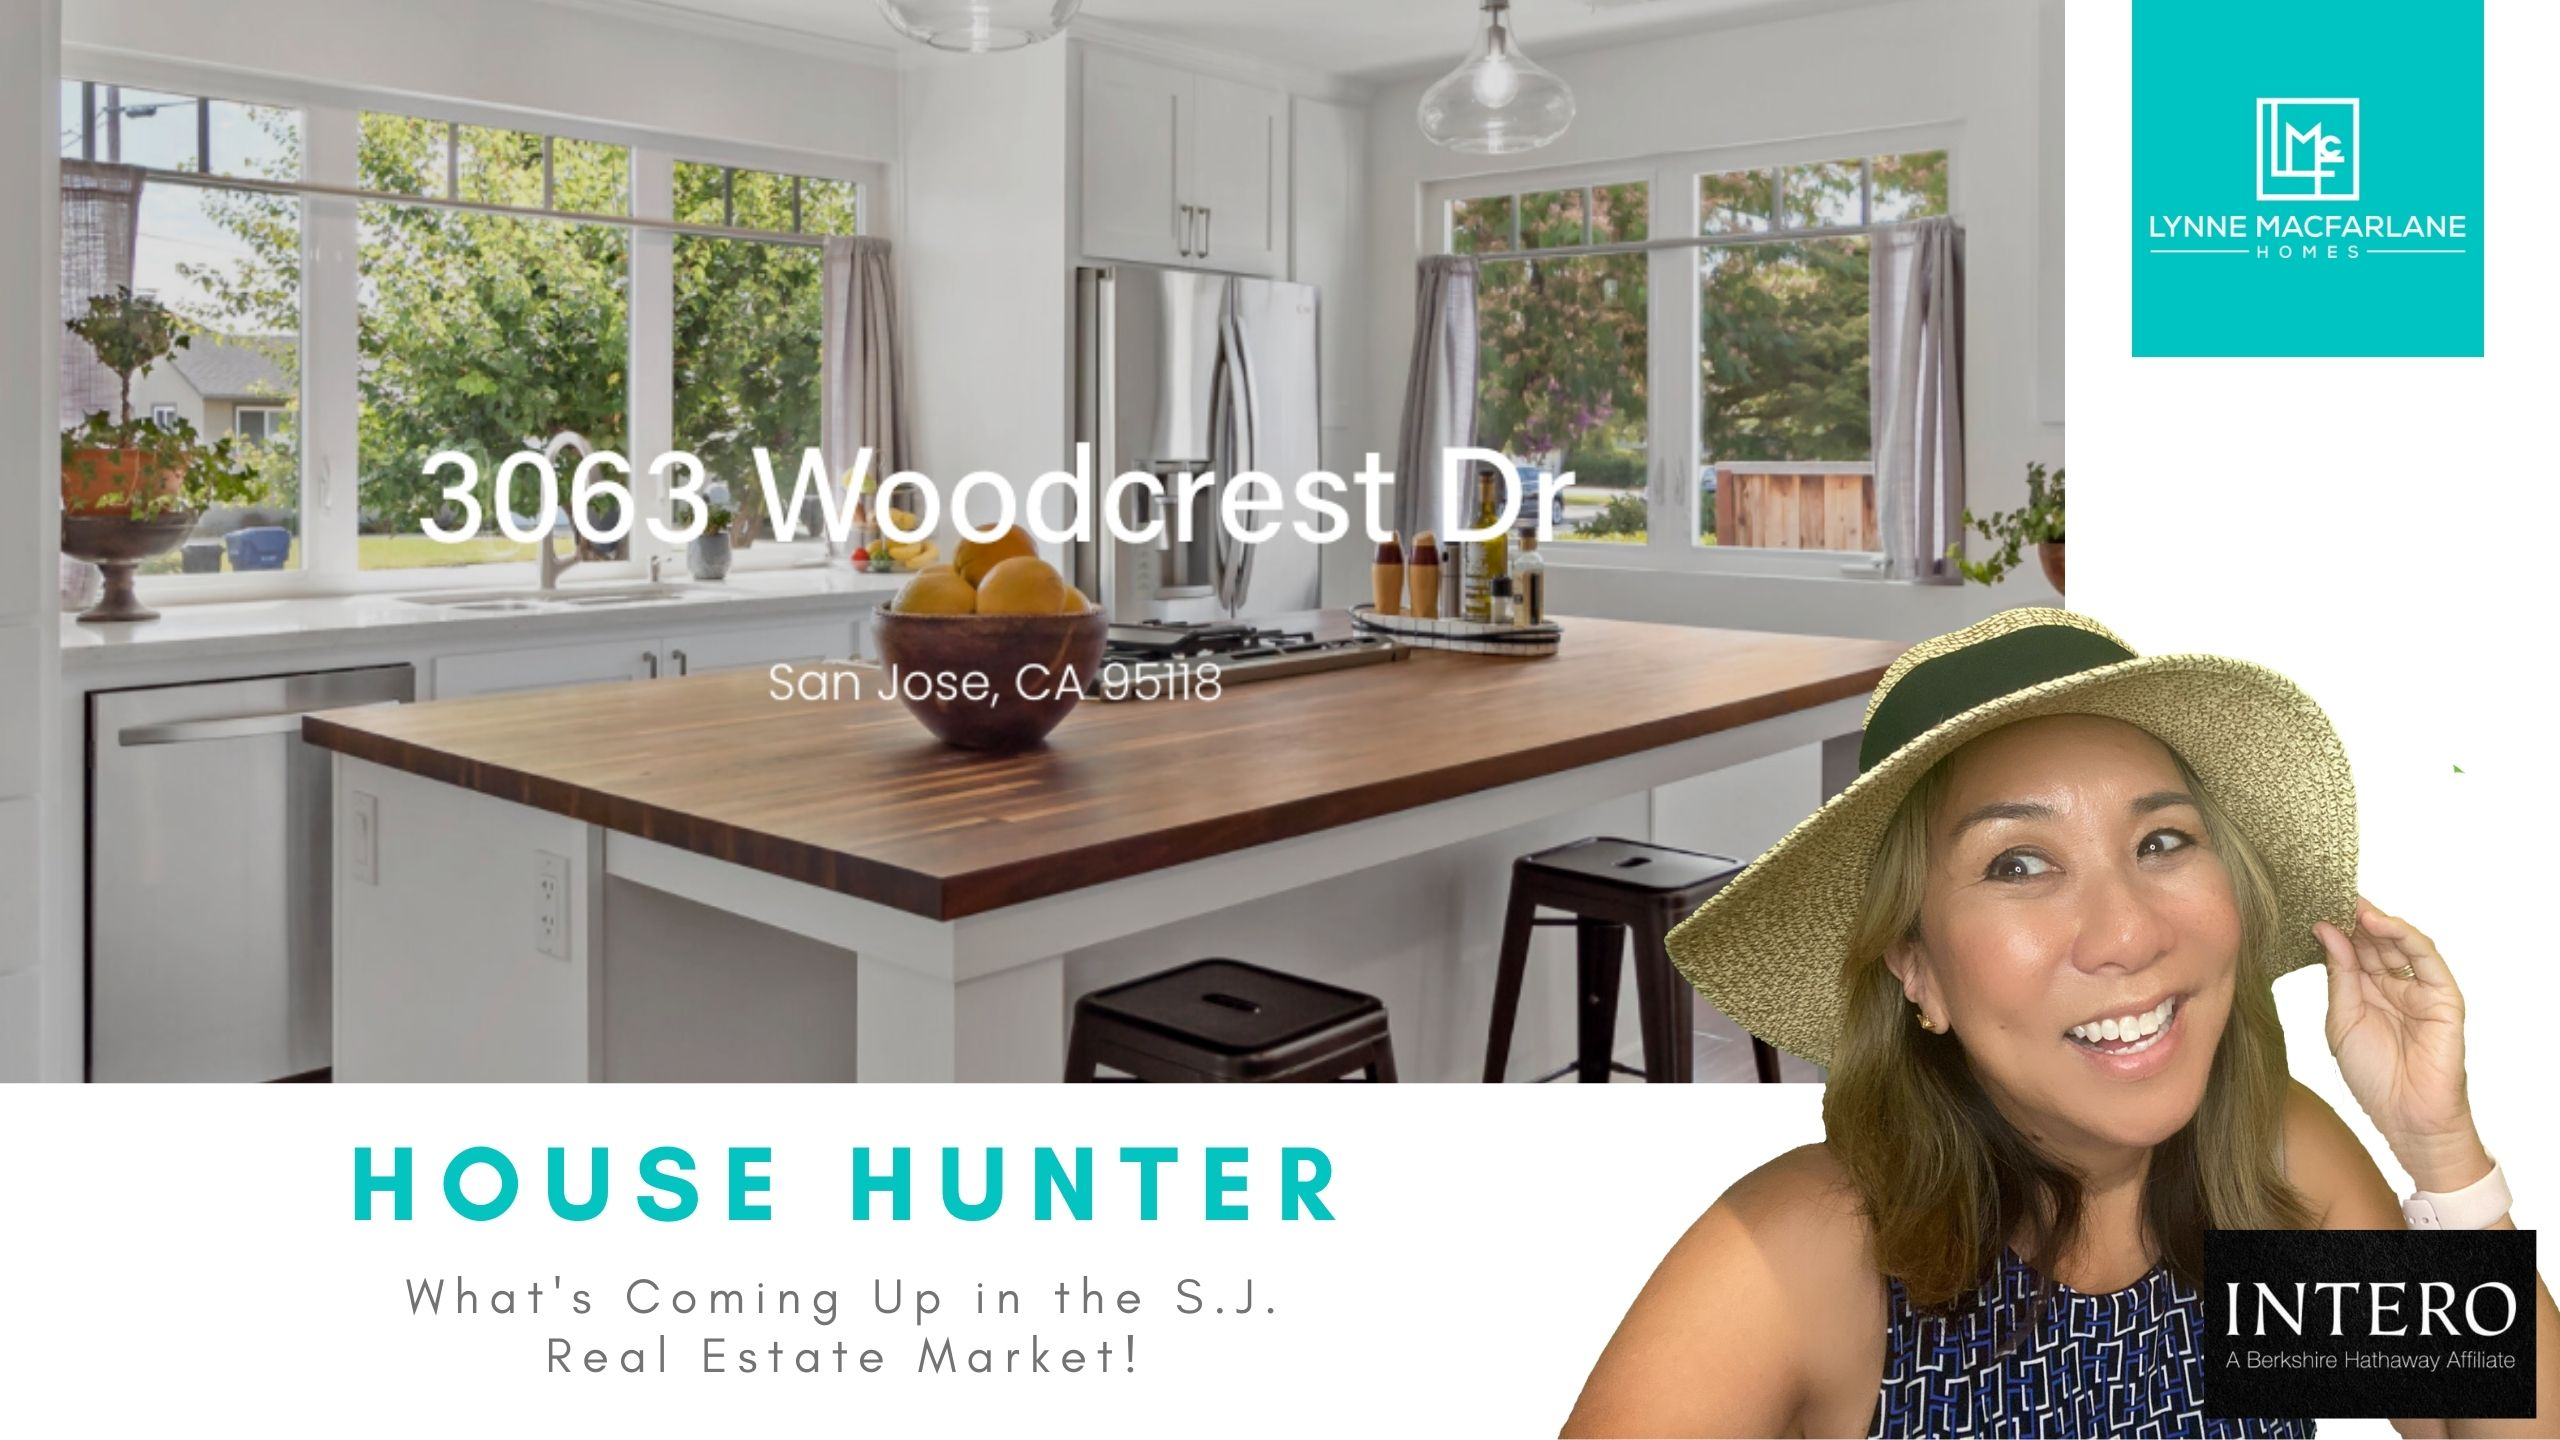 Lynne MacFarlane, Realtor - House Hunter Helping You Find Your Dream Home!